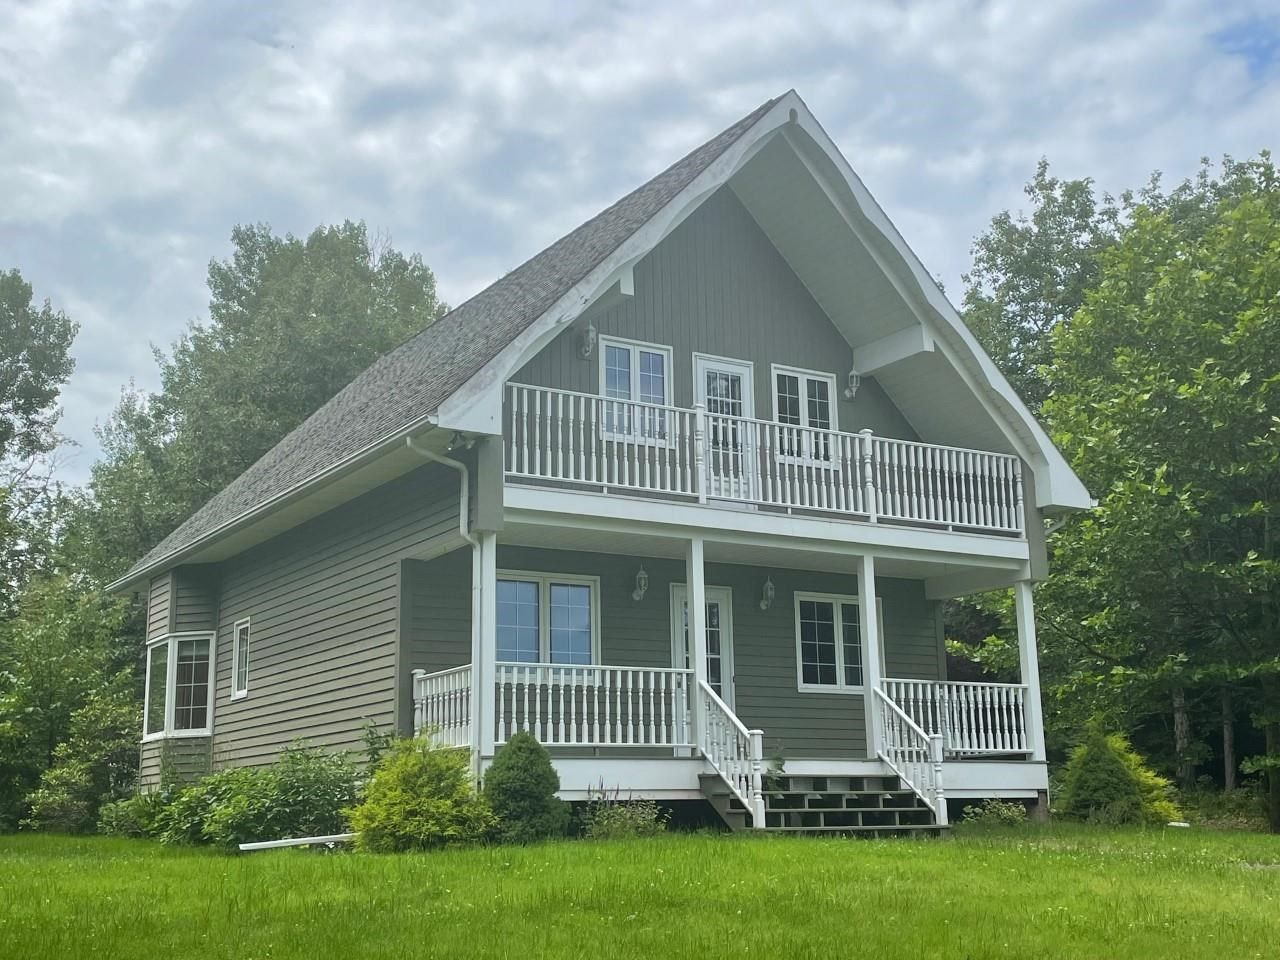 Main Photo: 8111 Pictou Landing Road in Little Harbour: 108-Rural Pictou County Residential for sale (Northern Region)  : MLS®# 202119545